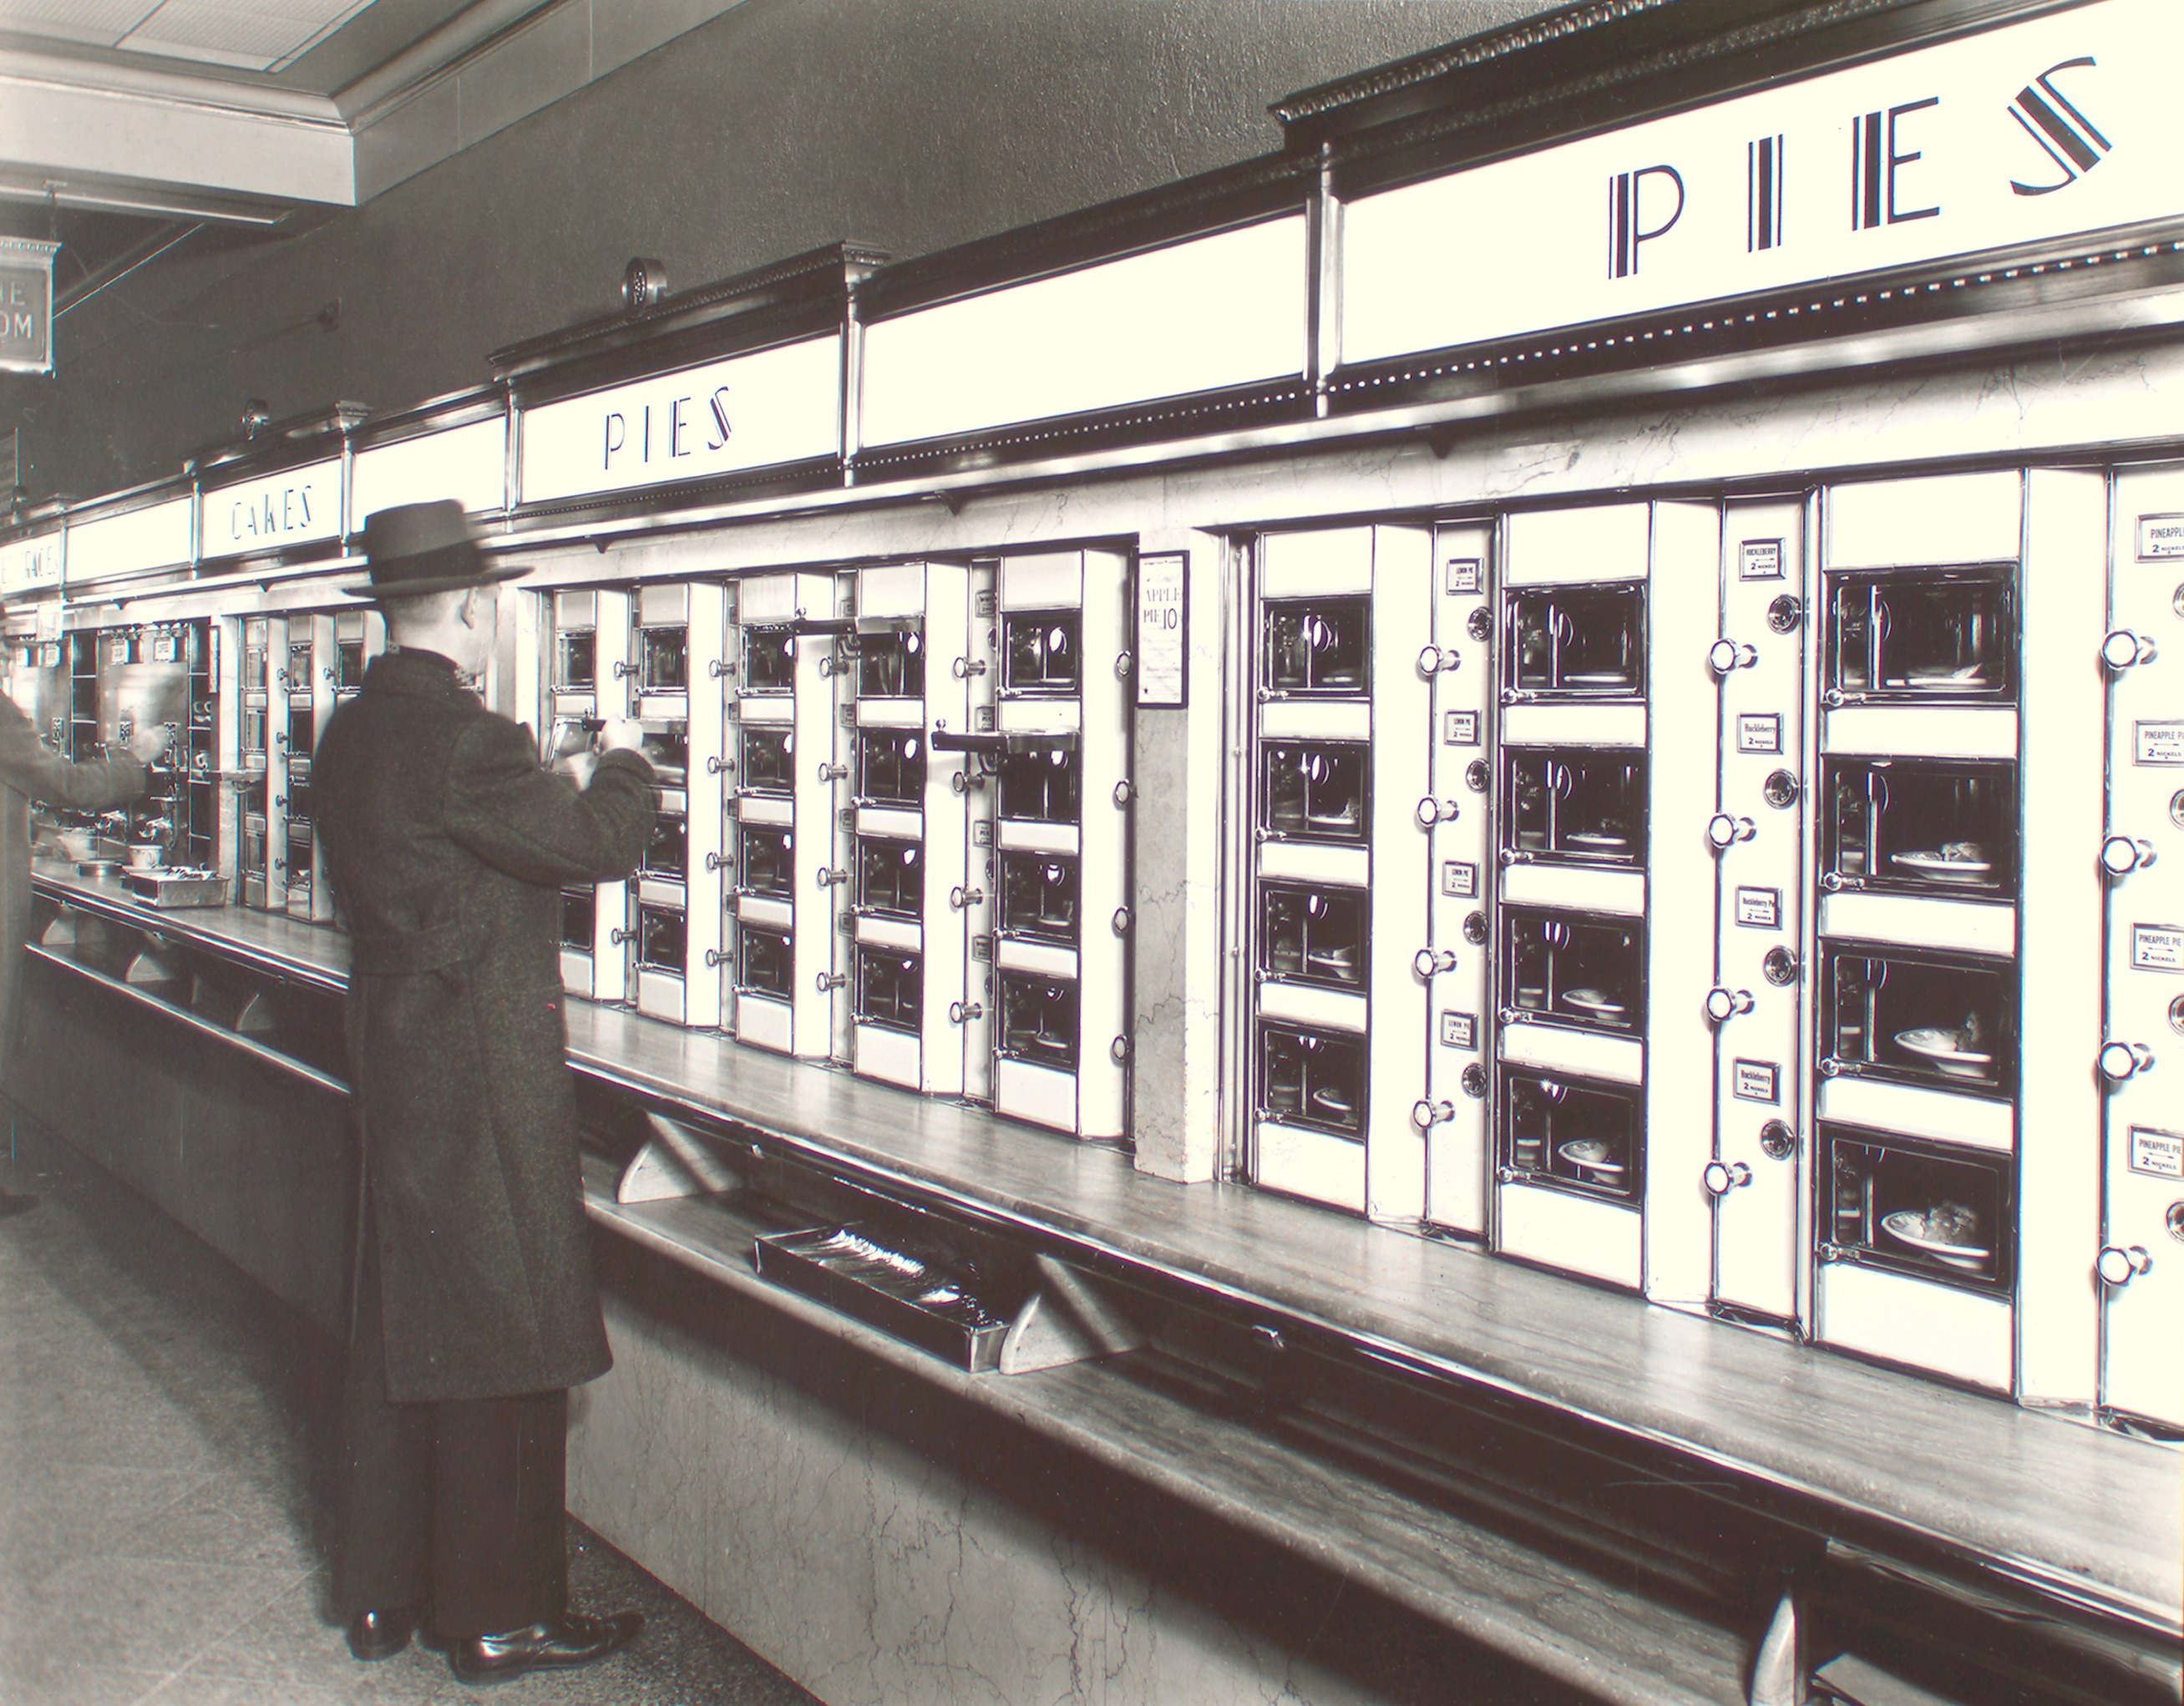 Food Locker Automat 1936